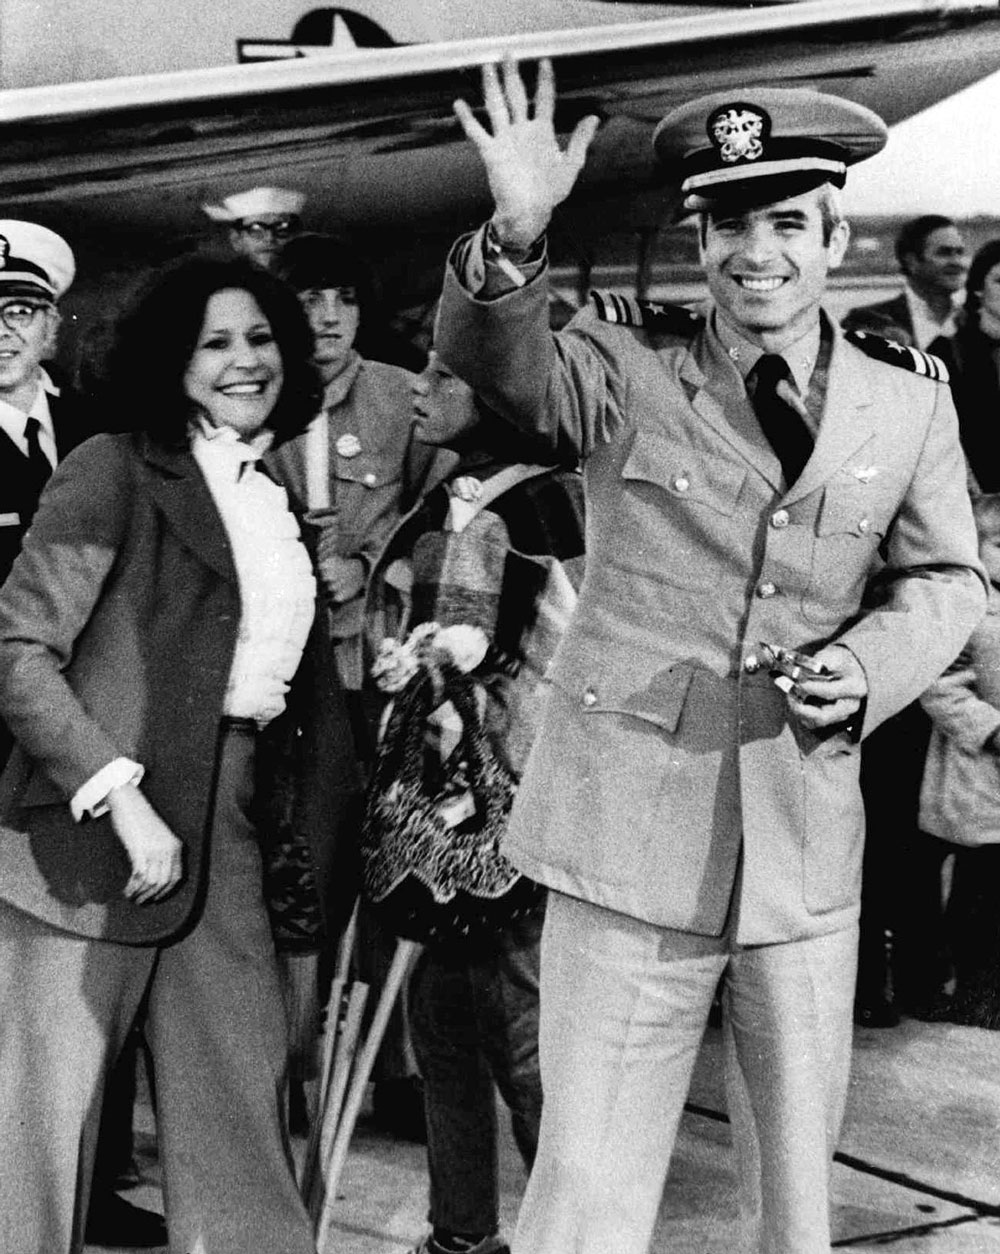 AP photo of McCain's return to NAS Jacksonville with wife and son